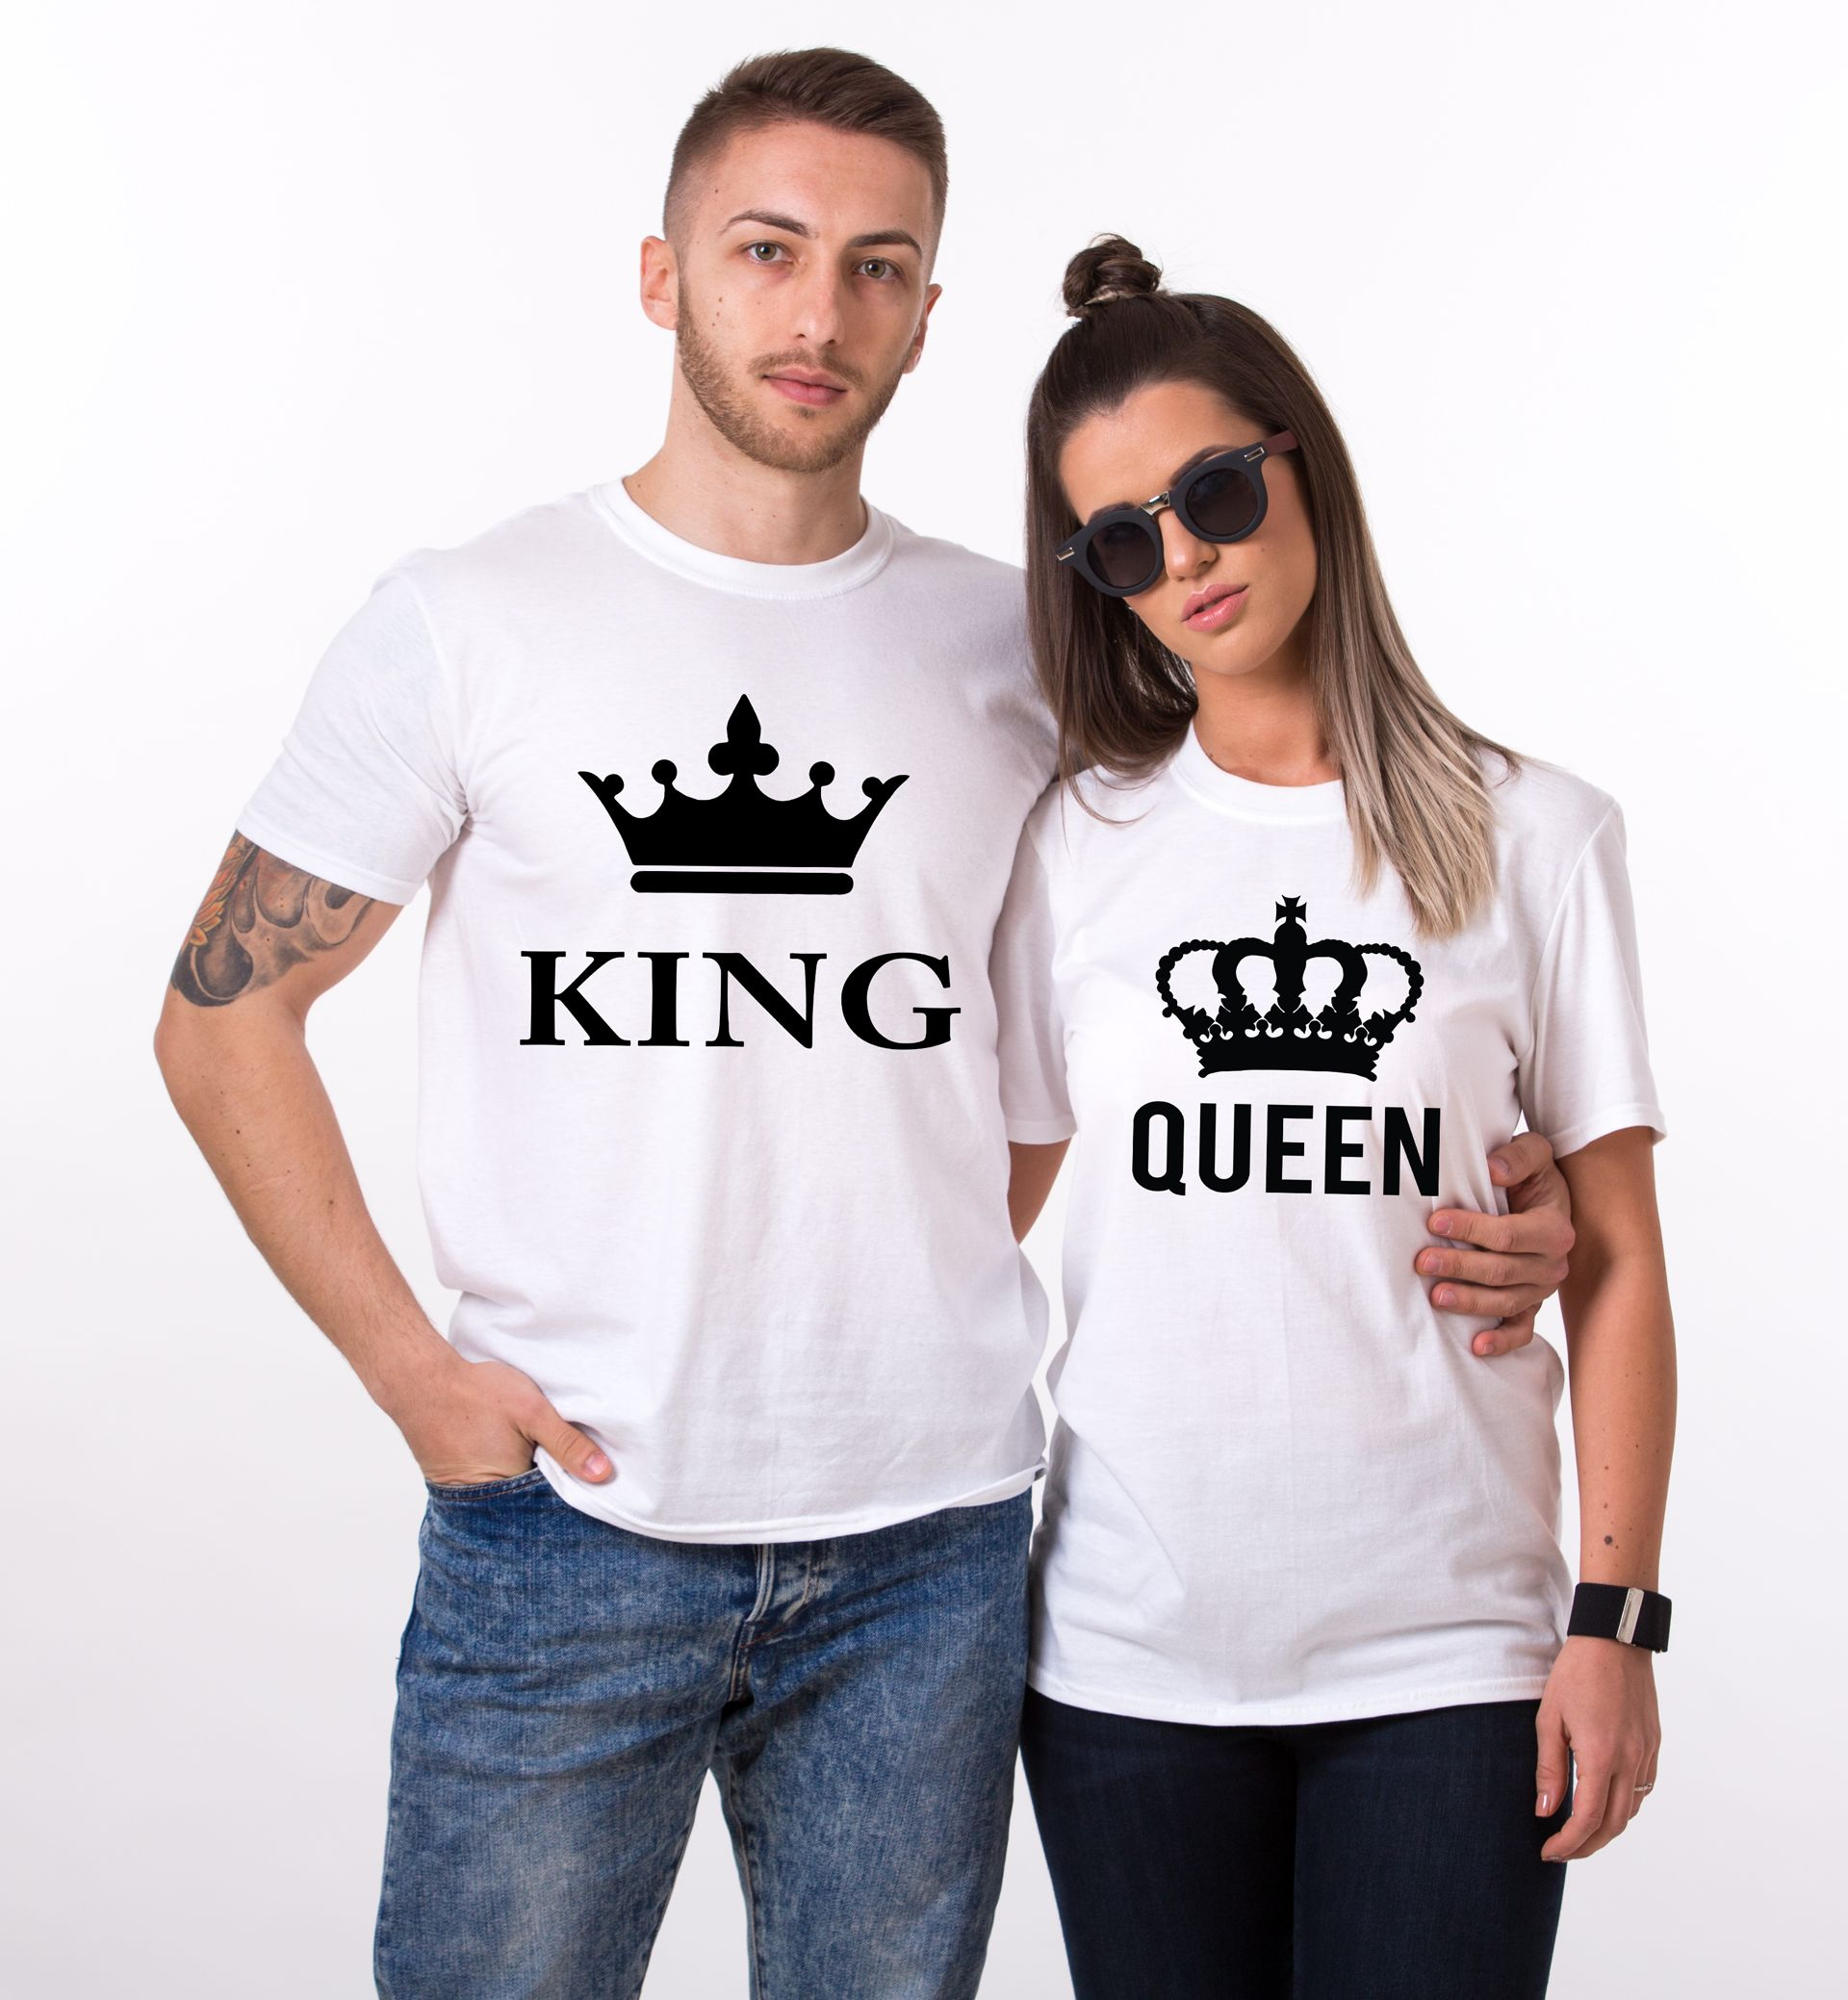 meet king and queen court house singles Find all information about the madison county department of social services  to verify that those meet the food  king and queen court house,.